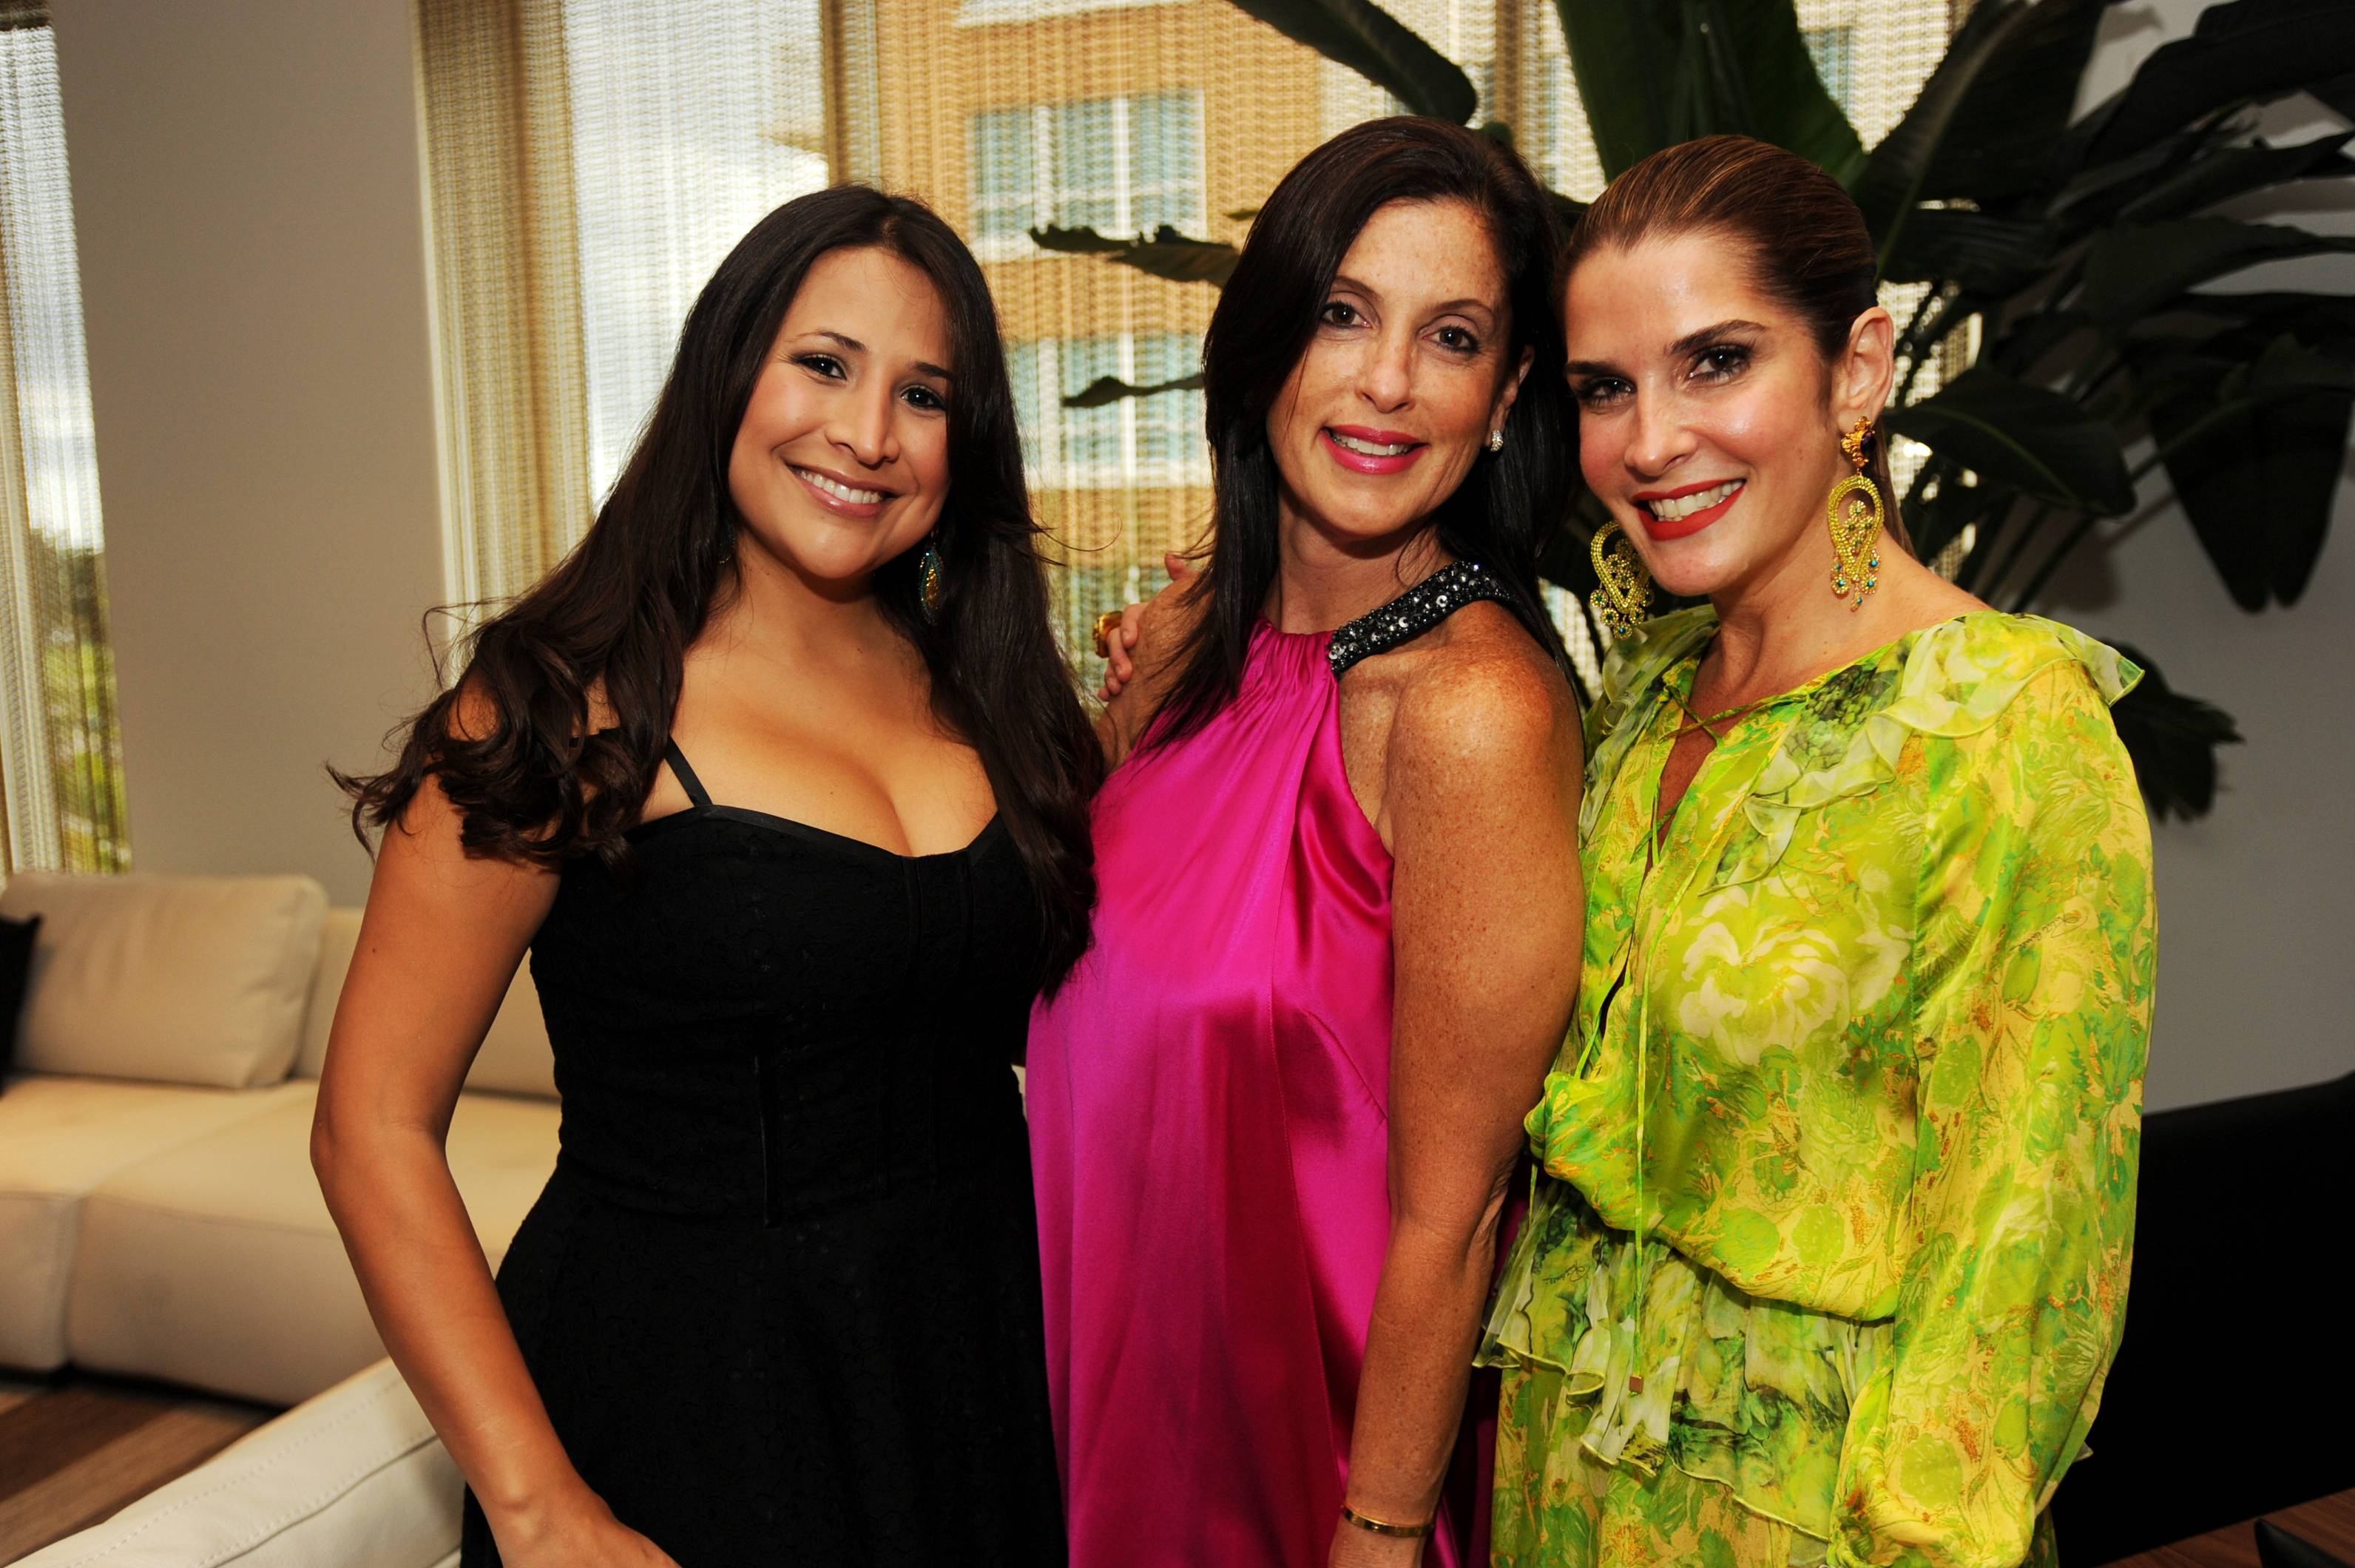 Elizabeth Garcia, Andrea Greenberg and Isabella Holguin at the Paramount Bay Grand Opening